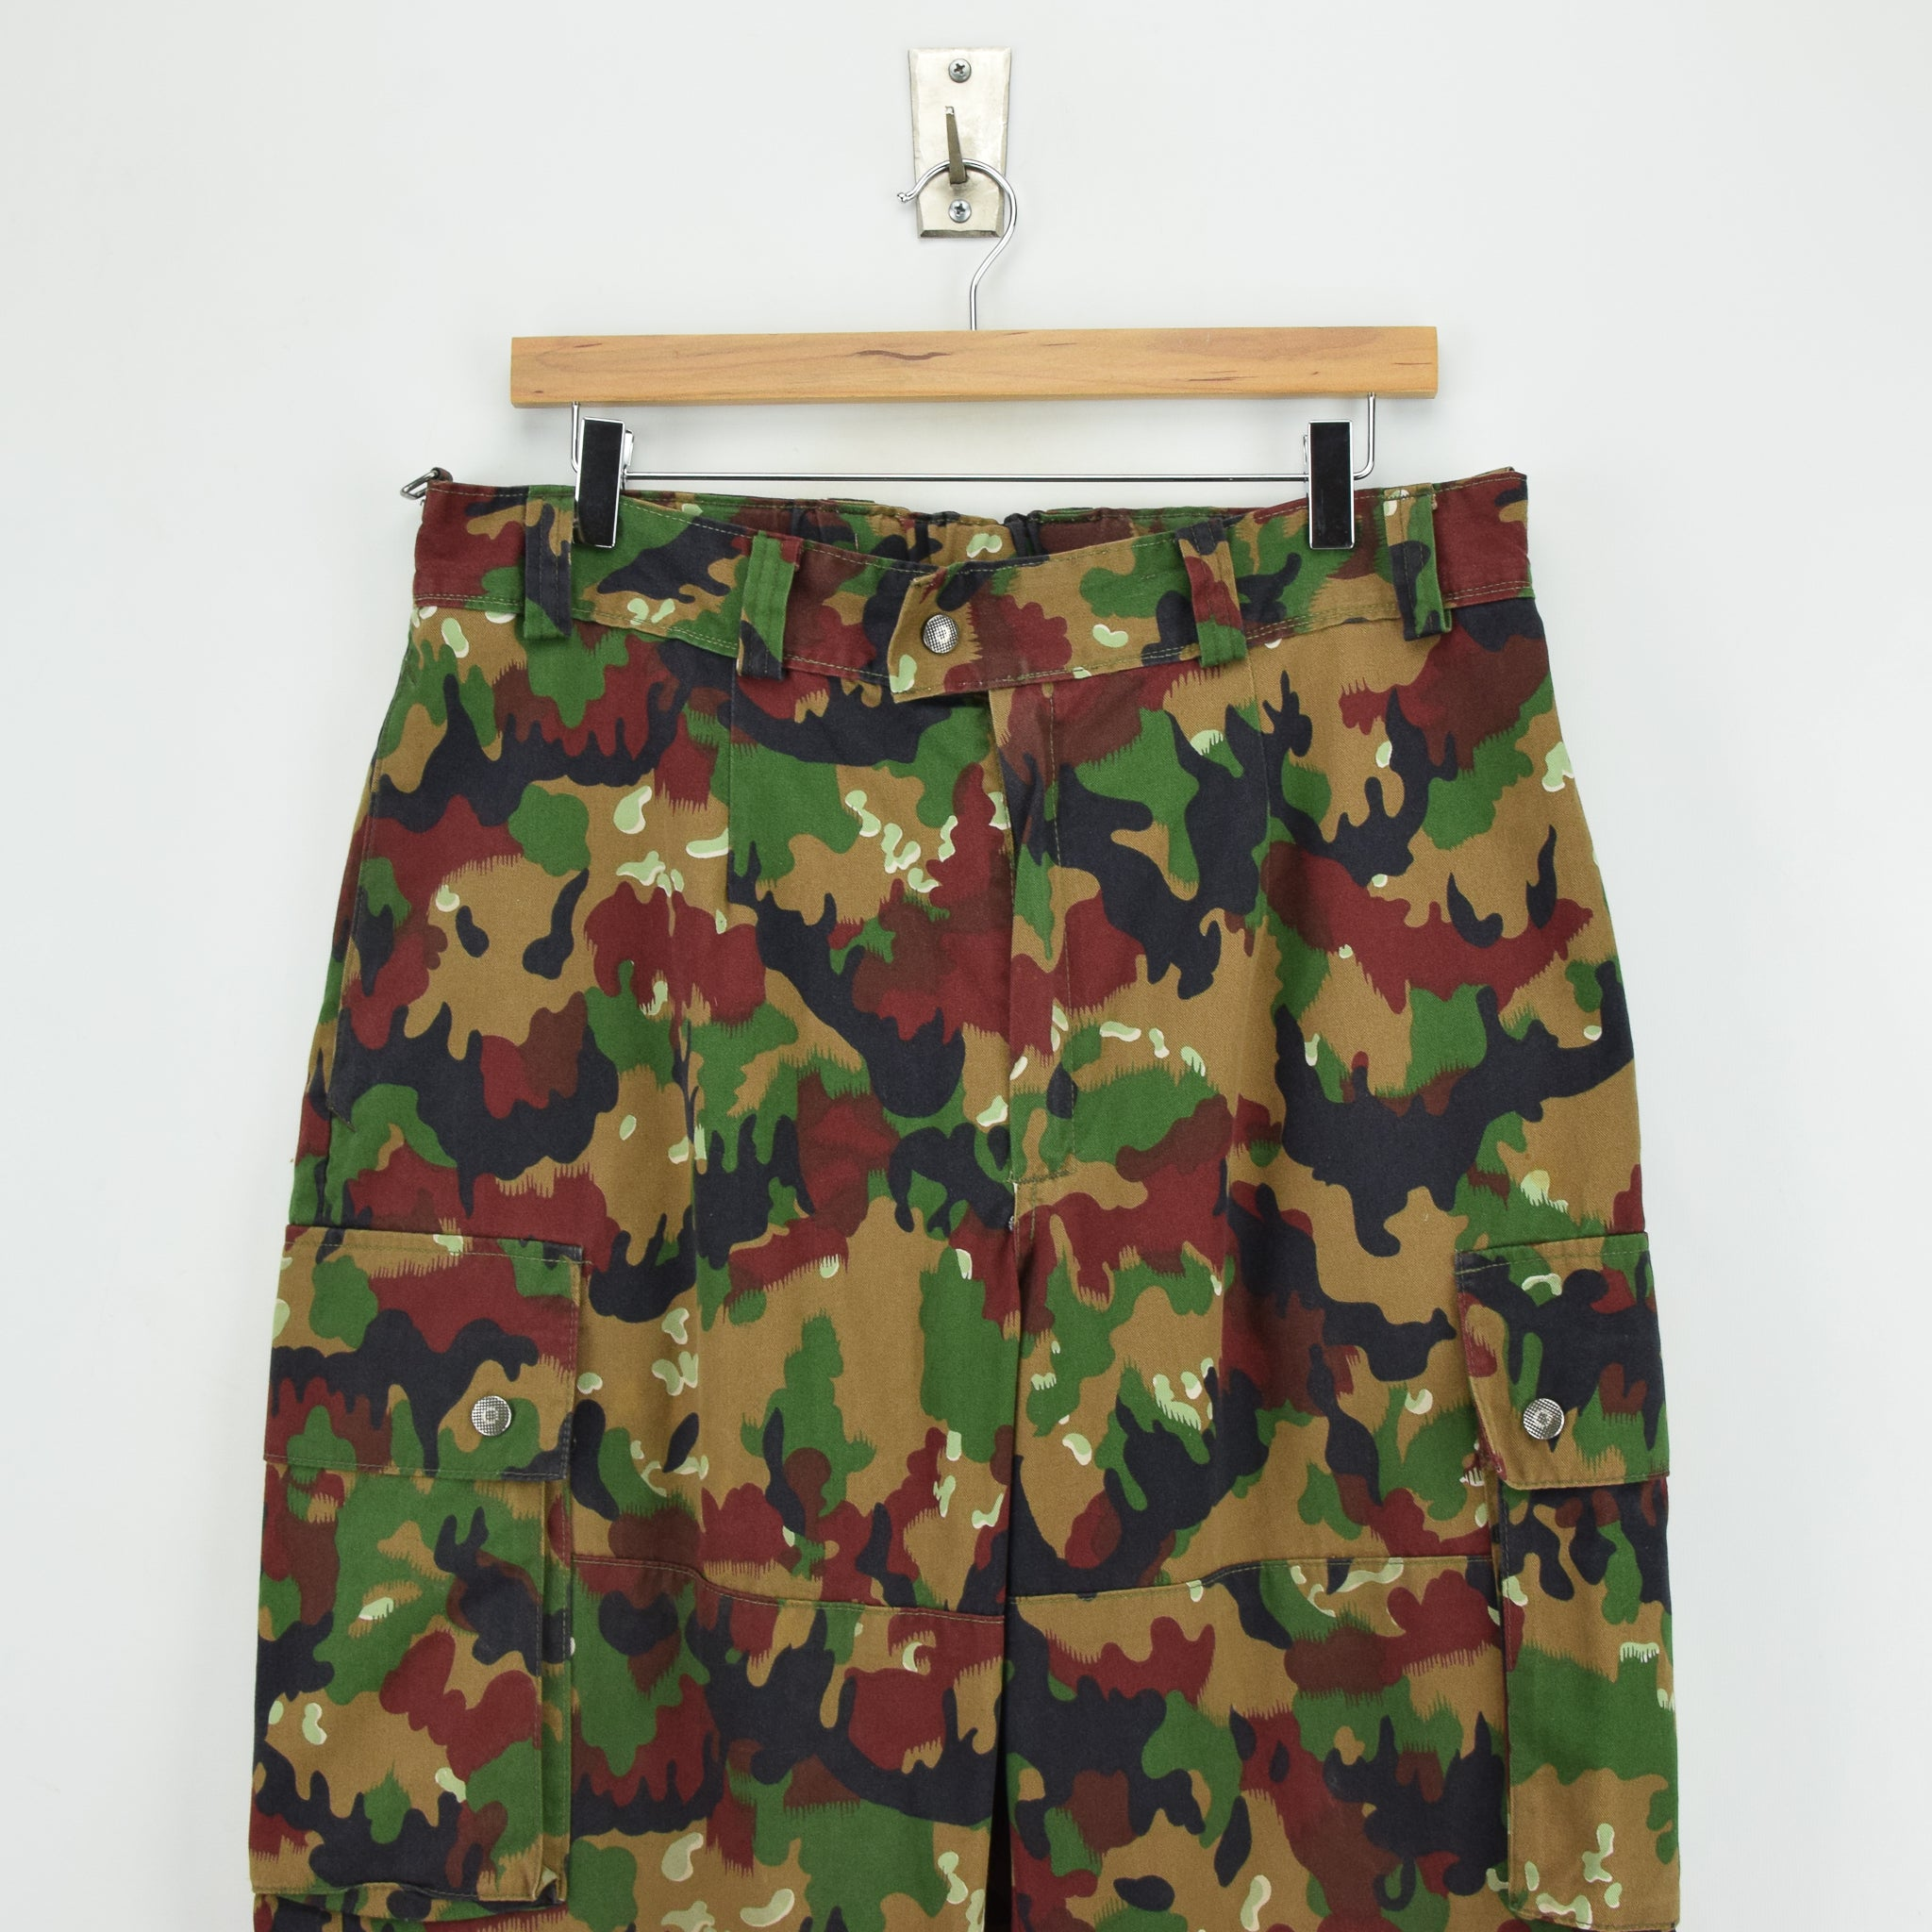 Vintage Swiss Army Alpenflage Camo Combat Pants Trousers Made in Sweden 32 W front waist